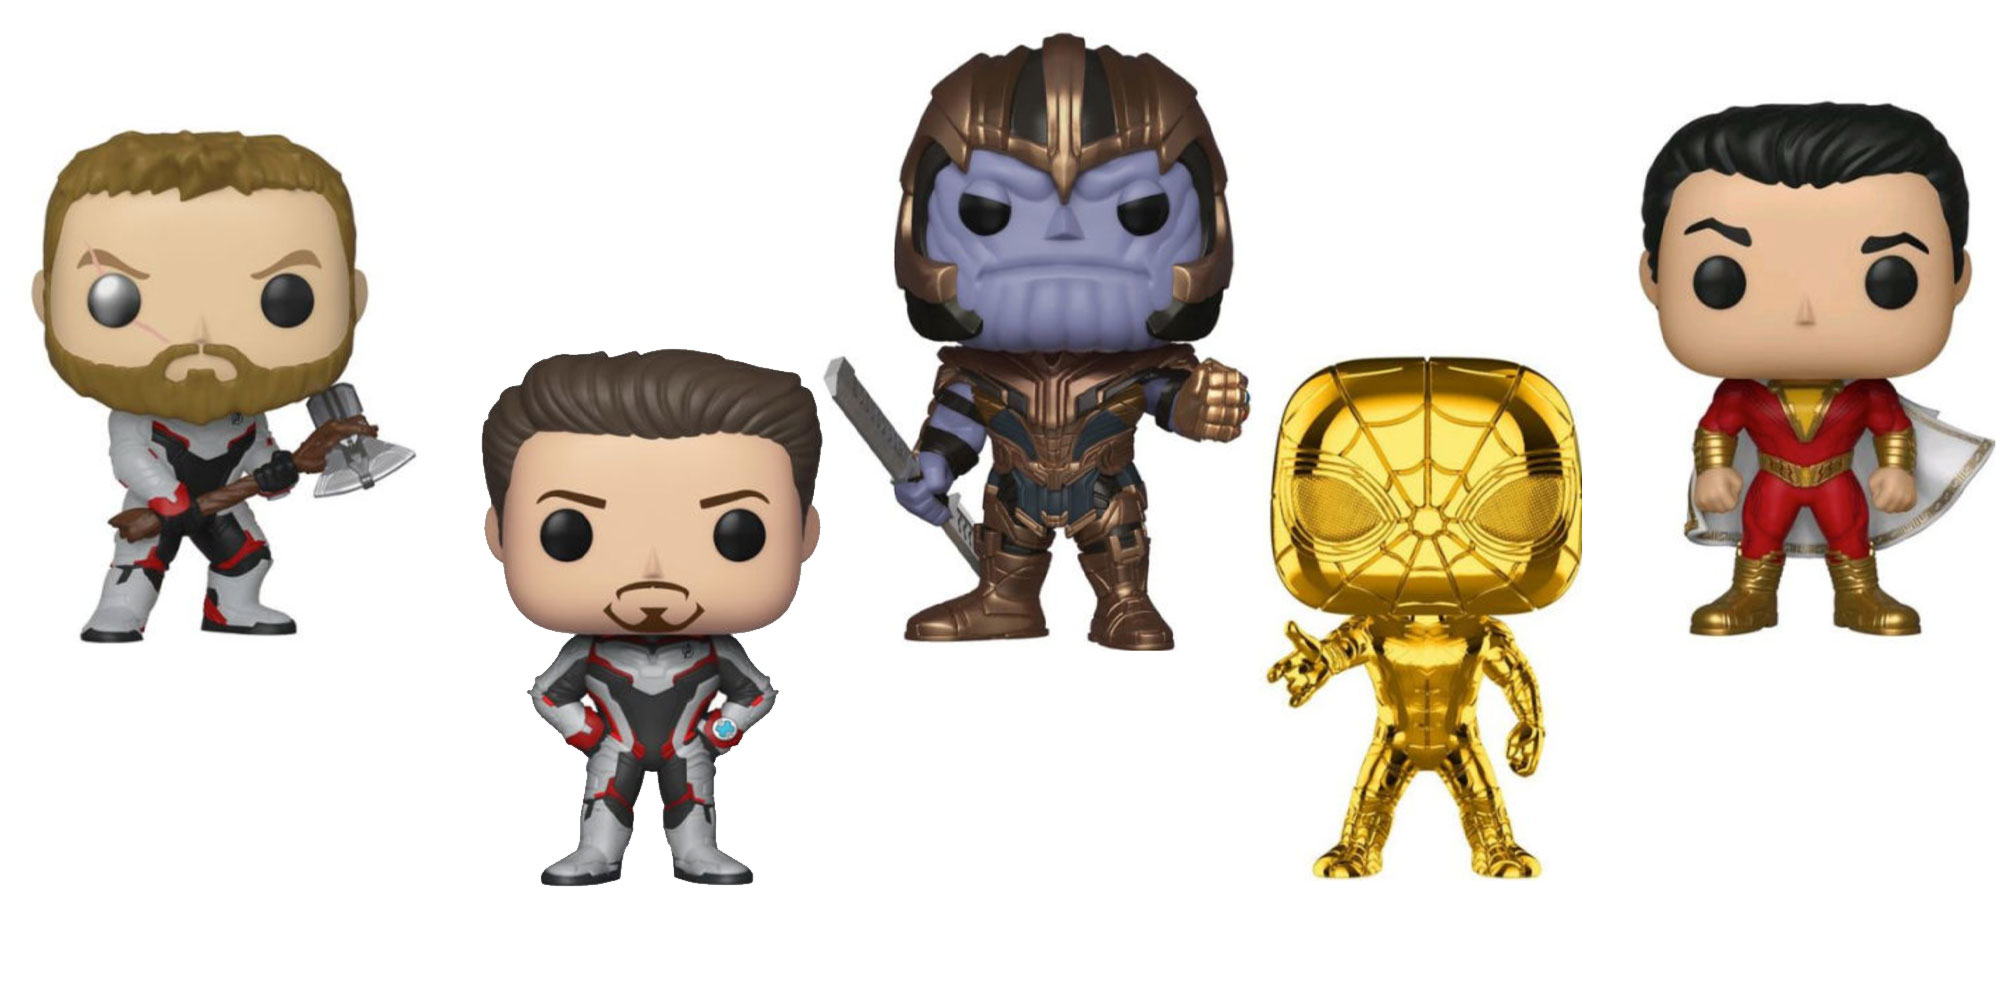 Barnes & Noble Funko POP! sale offers 3 for $20 or 9 for $50, Avengers: Endgame figures included